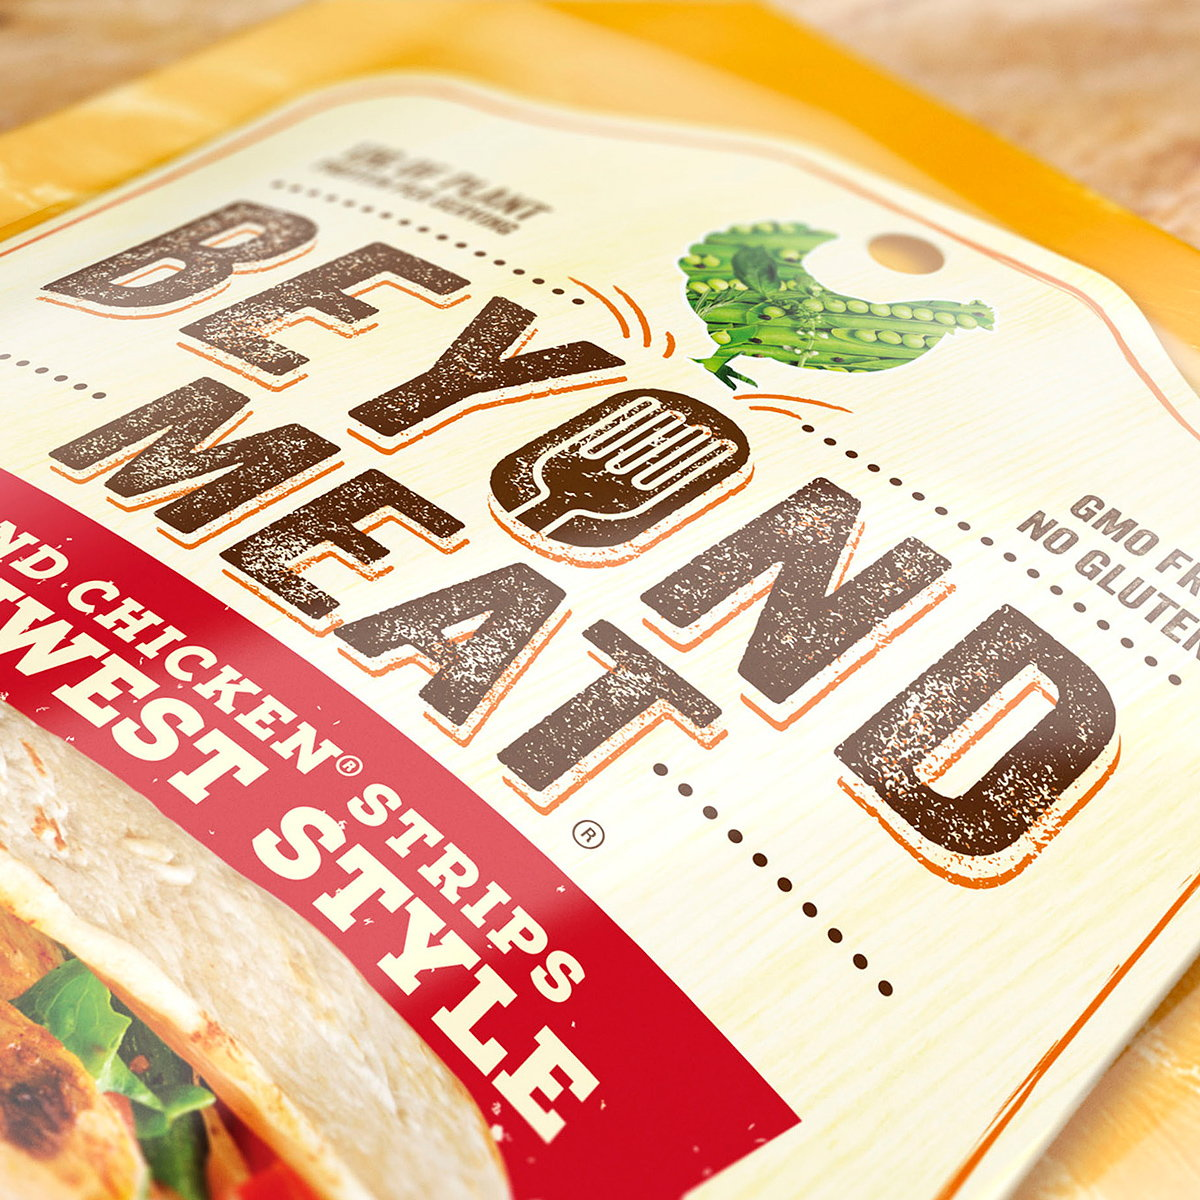 Beyond Meat Relaunches with Bold New Packaging and Visual Identity by Bulletproof